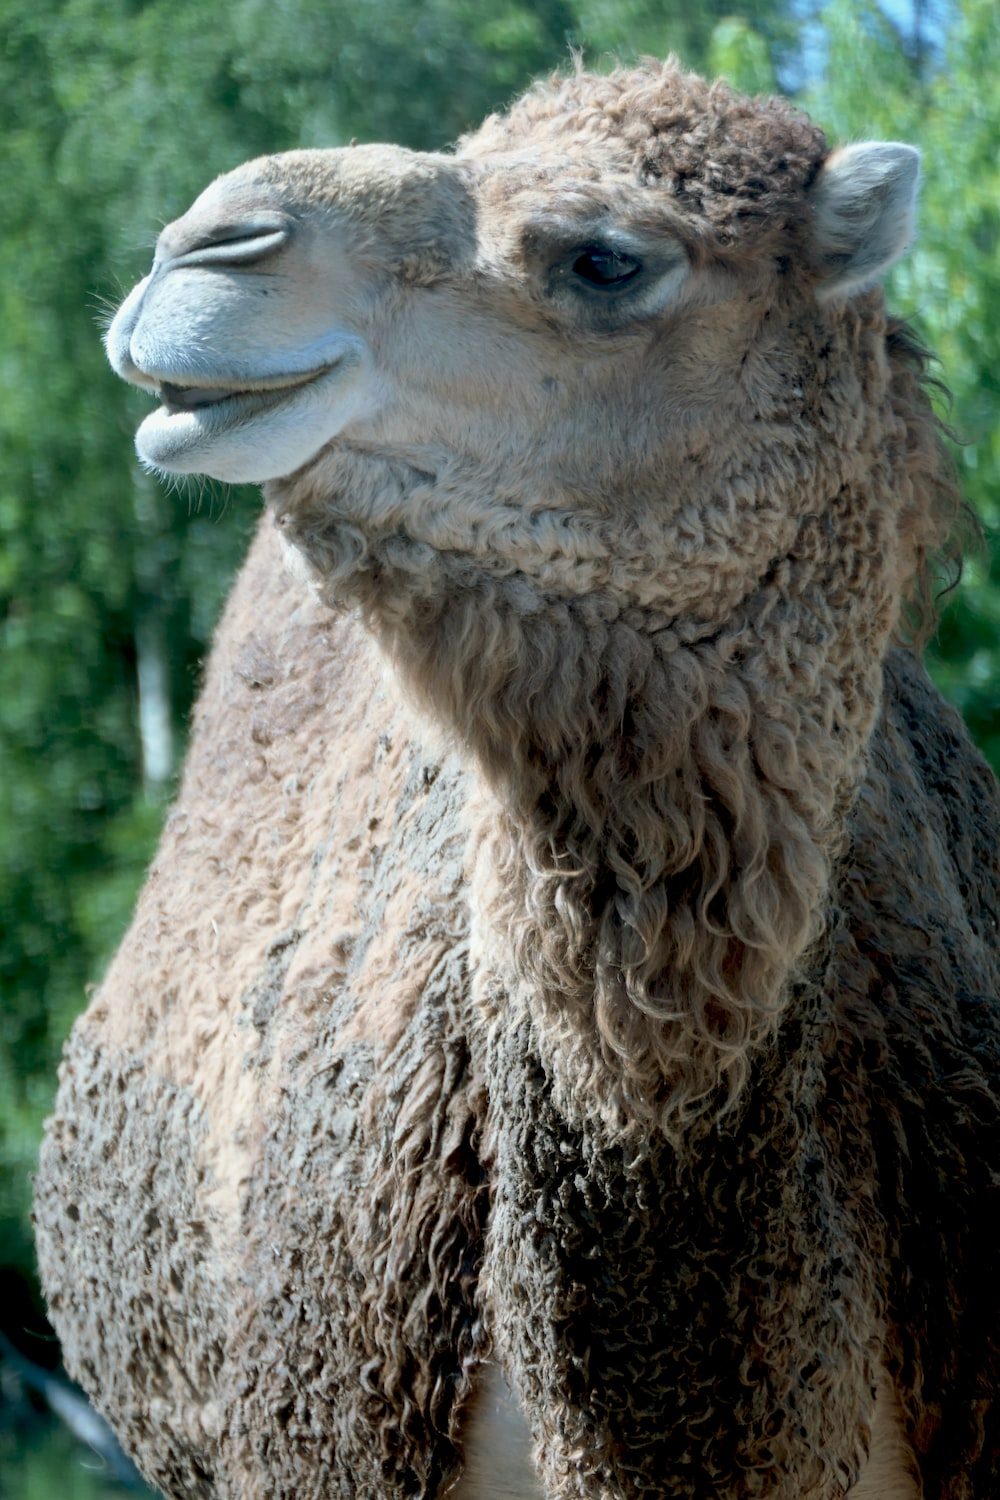 brown camel in close up photography during daytime